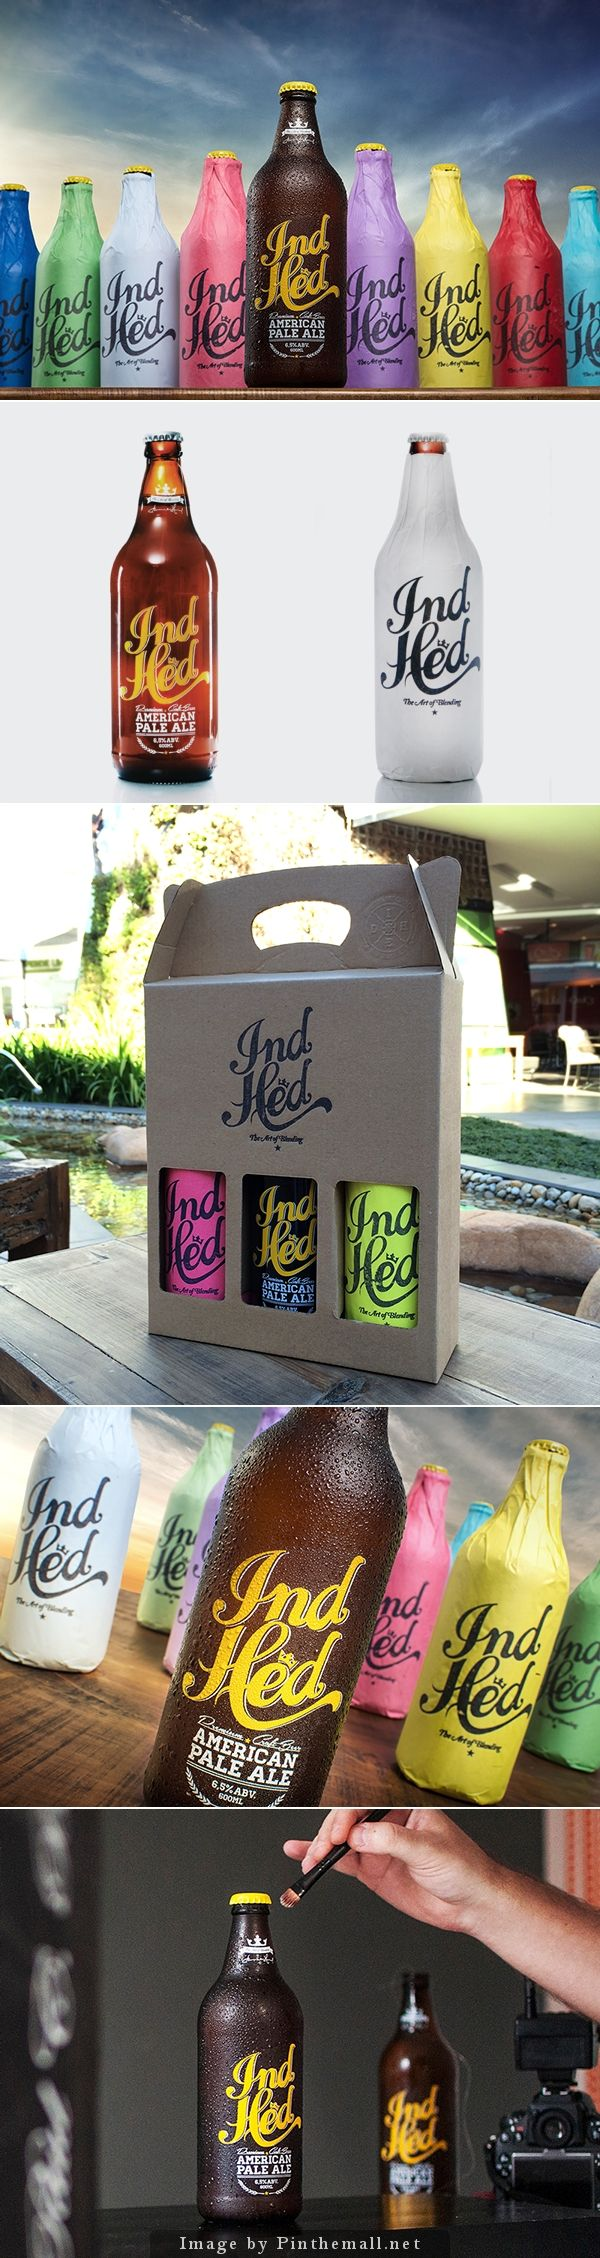 Craft Beer packaging- not related but in a sense related to strong, bold and colourful imagery.